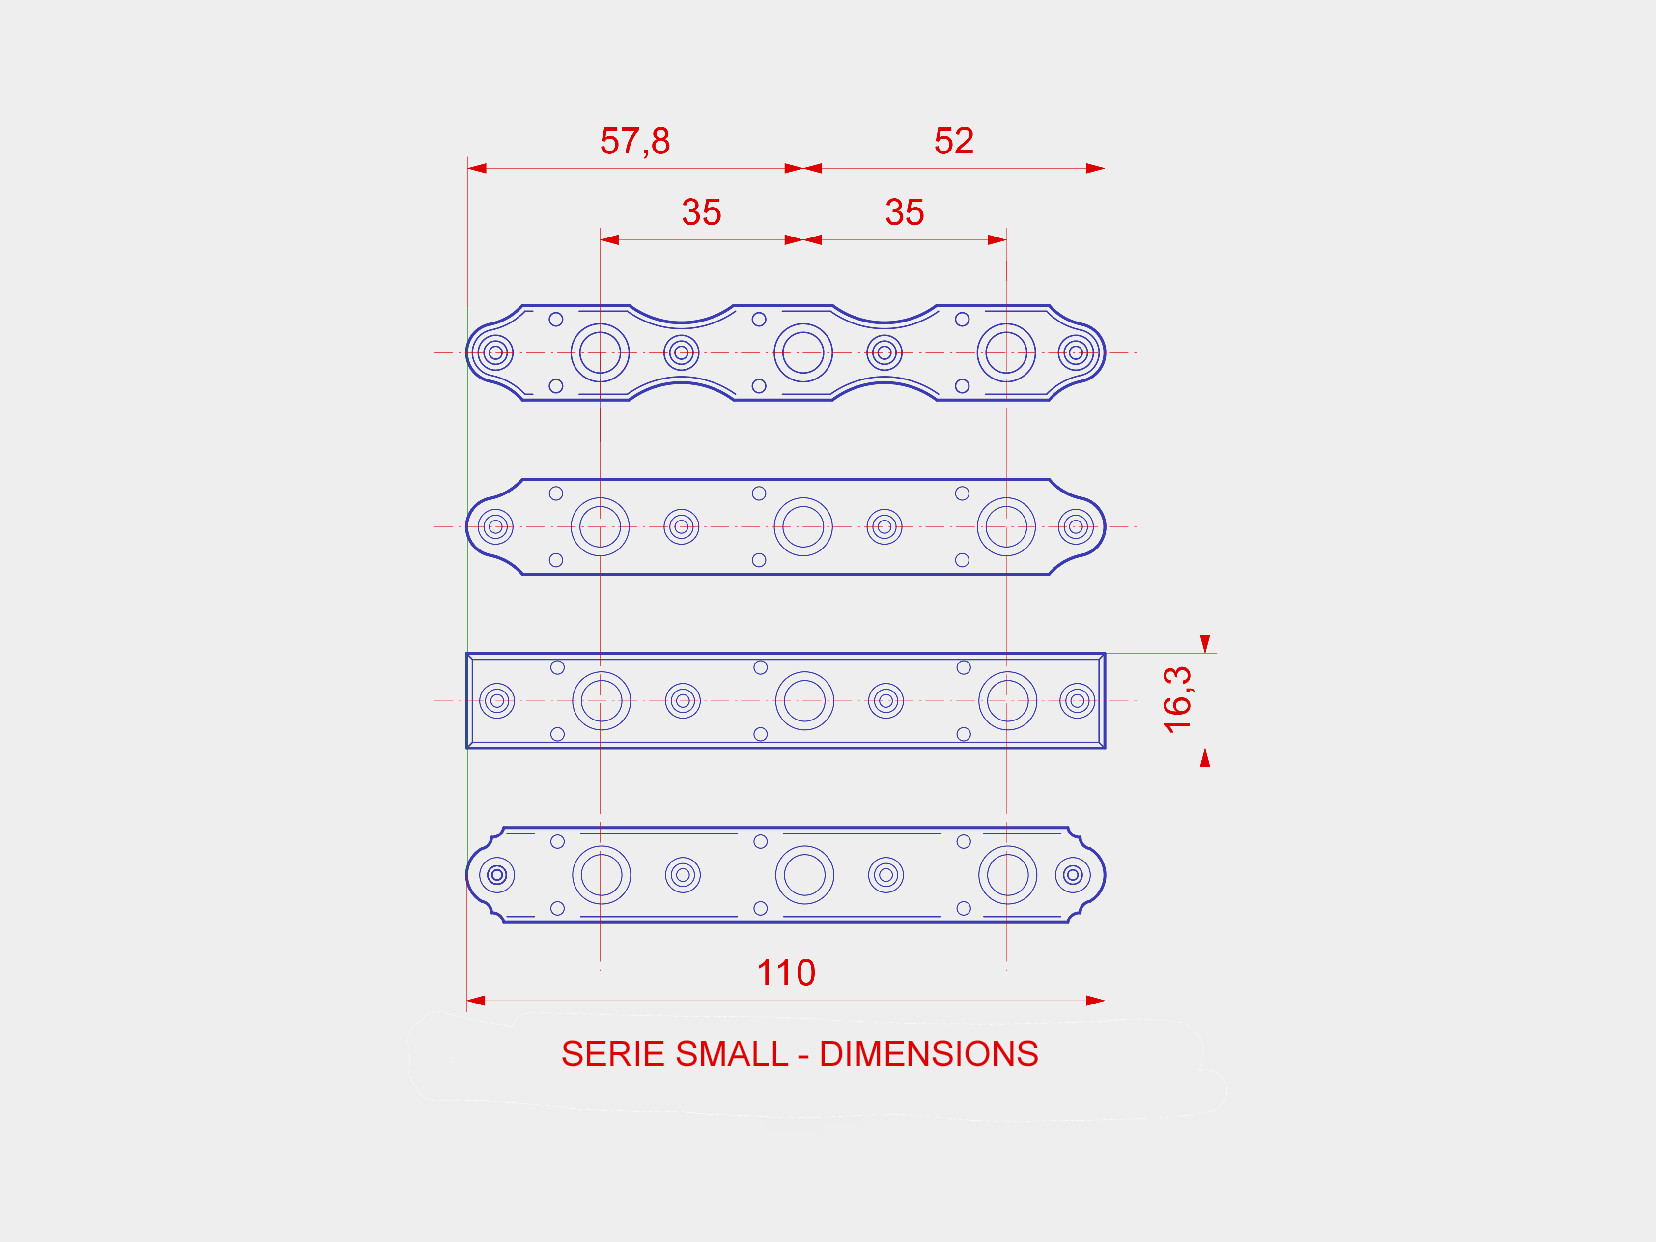 Small Series Dimensions